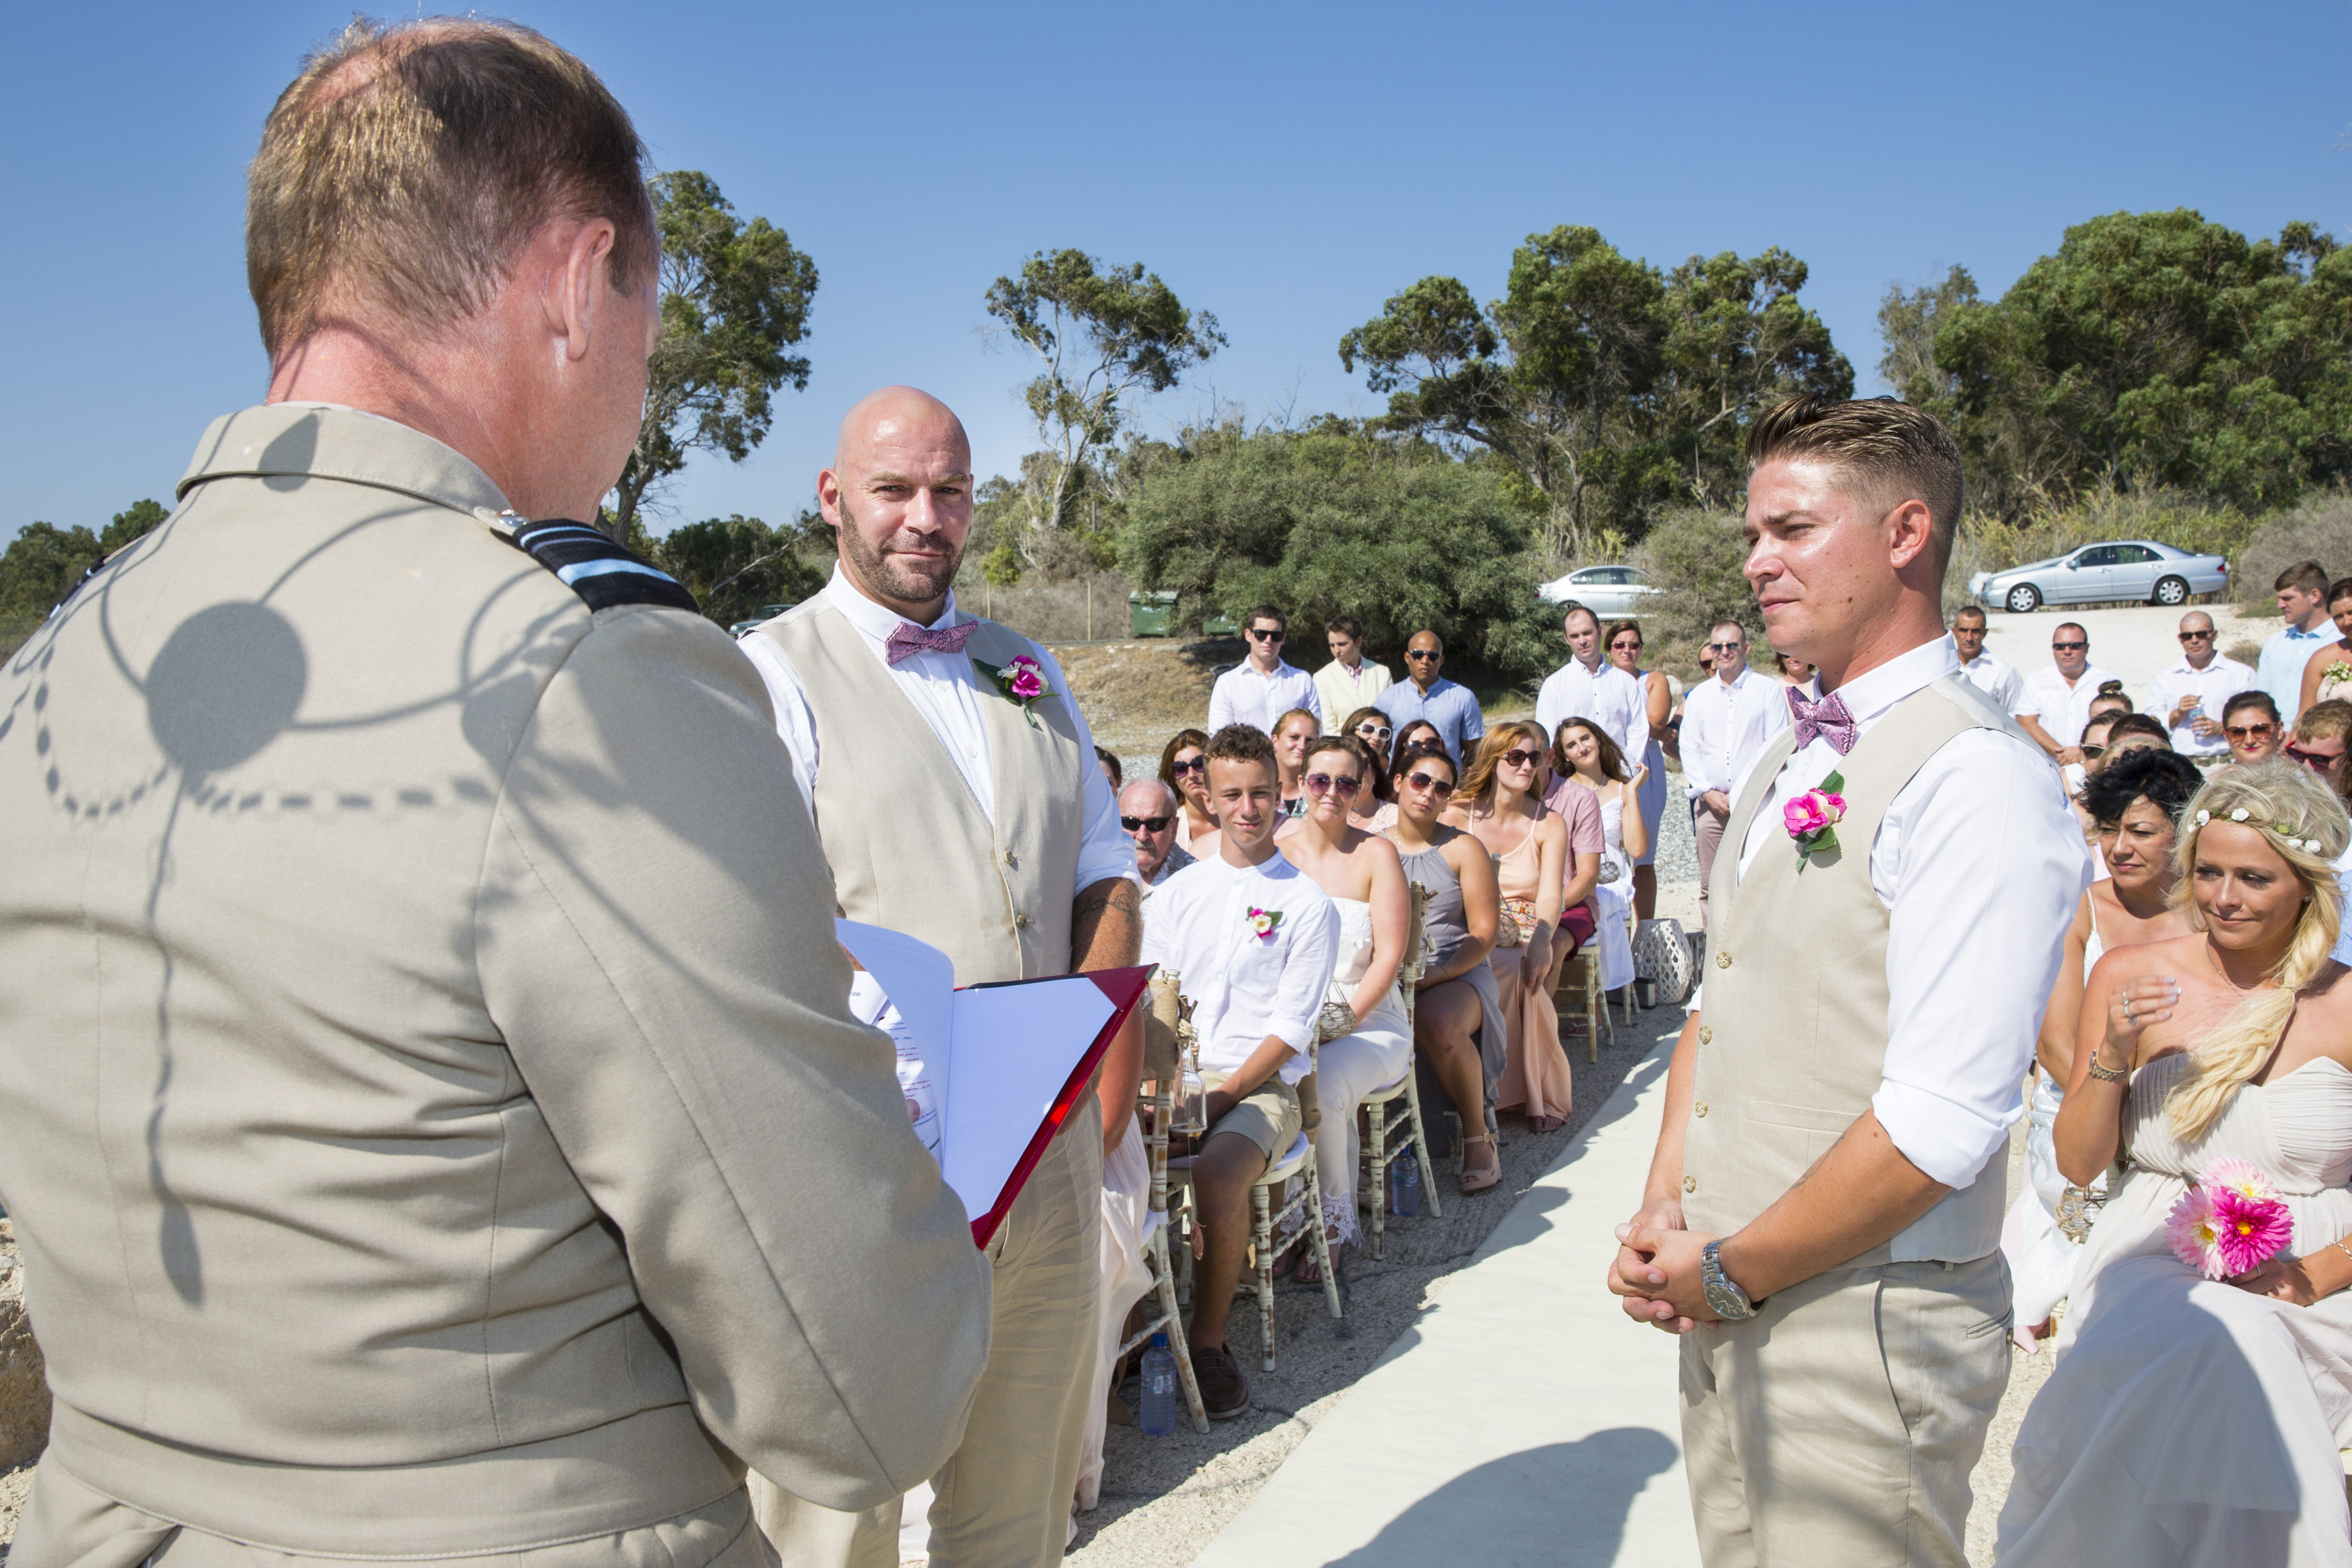 Marriage 1 - L to R: Sovereign Base Area Administrator, Air Vice Marshal Mike Wigston, Aaron Weston and Sergeant Alastair Smith. Sergeant (Sgt) Alastair Smith (sic) a Soldier from 2 Prince of Wales Royal Regiment (2PWRR) today married his civilian partner on Saturday 10 September 2016 in Dhekelia, part of the British Sovereign Base Areas on the island of Cyprus. The ceremony was conducted by Commander British Forces (CBF) Cyprus, Air Vice-Marshall (AVM) Mike Wigston, CBE, RAF (sic) and was attended by family, friends and members of Sgt Smiths Battalion 2PWRR.